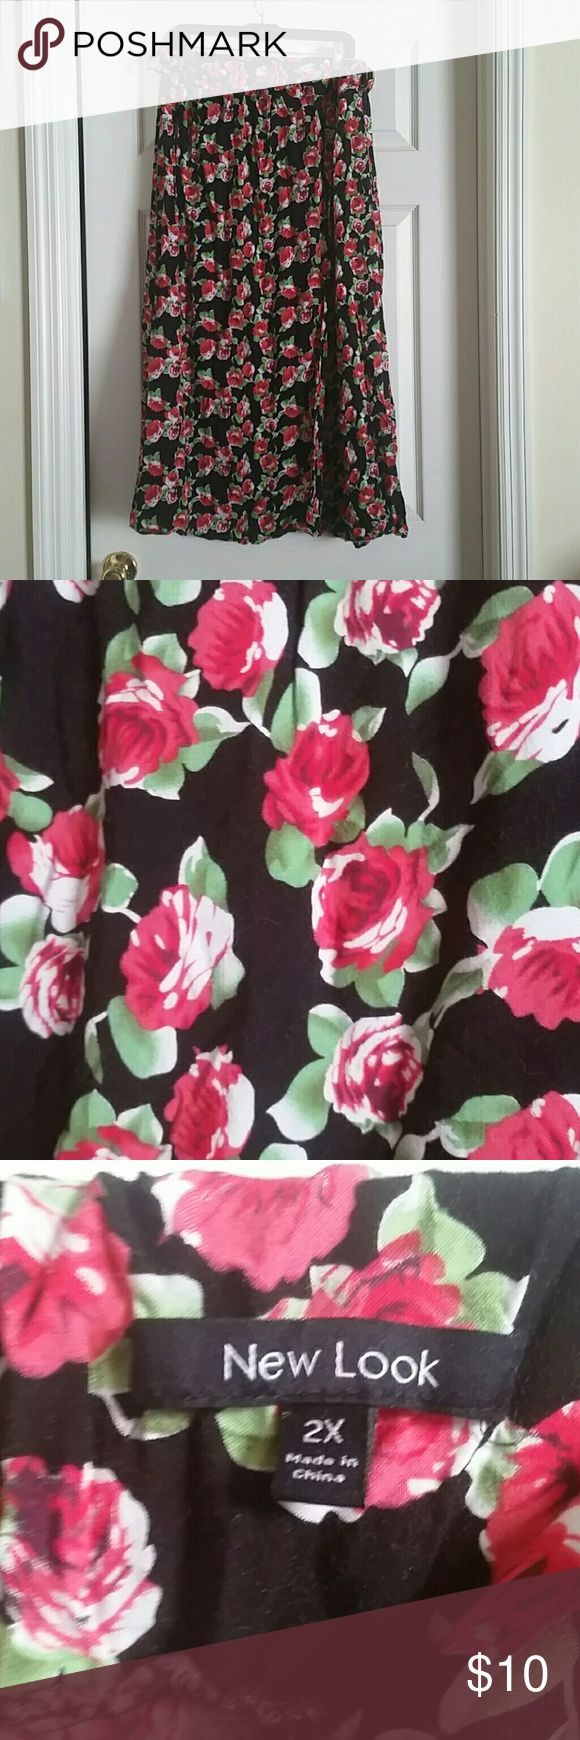 Rose printed maxi skirt Flowy and lightweight red rose printed maxi skirt on black background. Brand is new look. Elastic waist, has belt loops, does not come with belt. No rips or stains. Reasonable offers accepted. Smoke free, pet friendly home. New Look Skirts Maxi